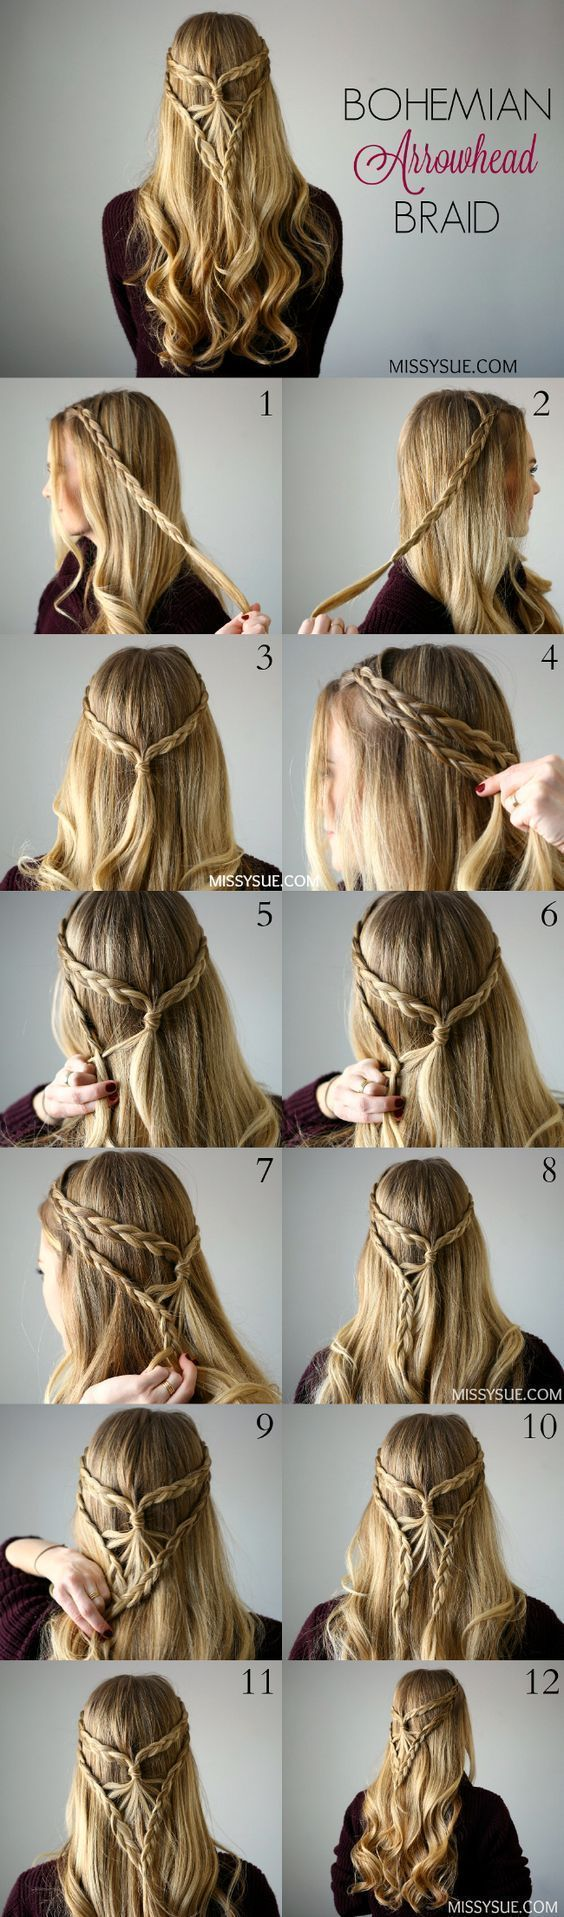 easy braided hairstyle tutorials that anyone can master make